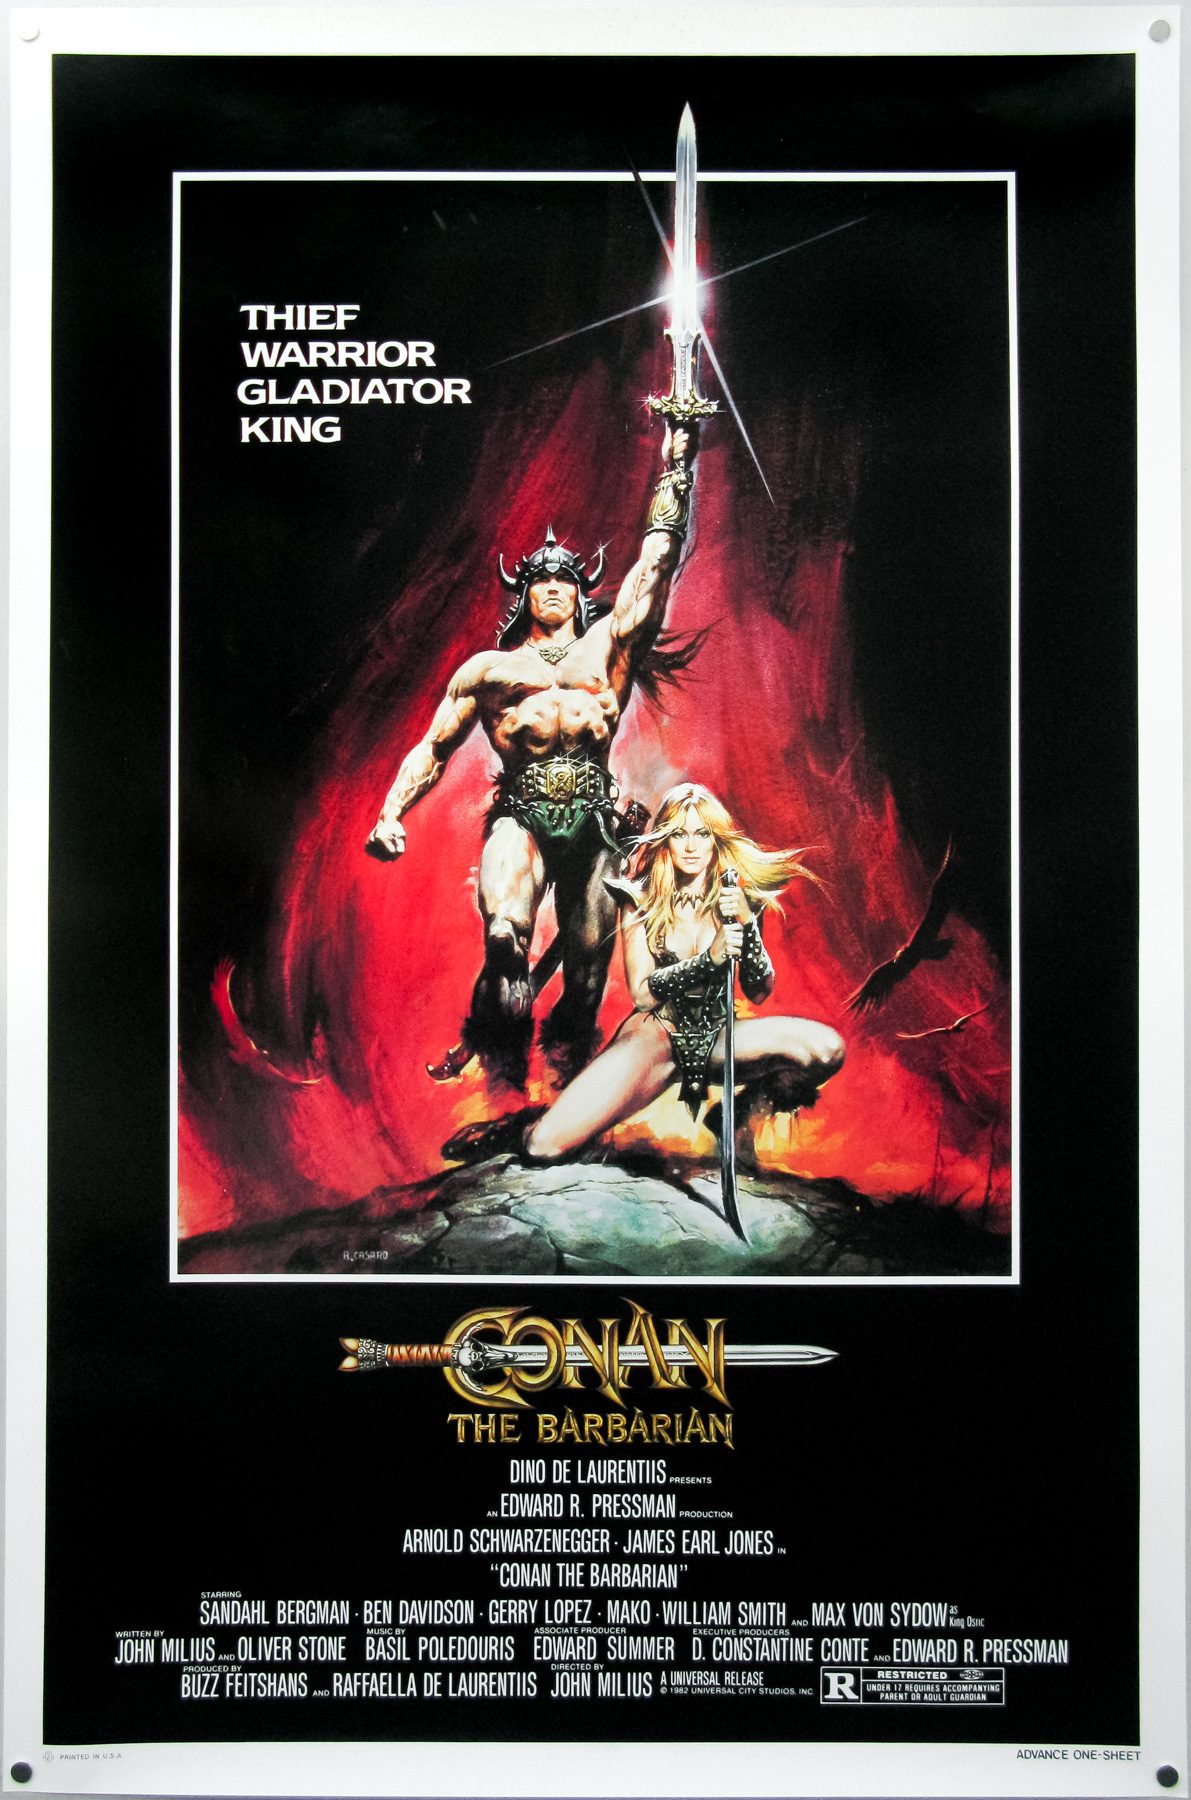 The American one sheet for Conan the Barbarian, painted by Renato Casaro in 1982